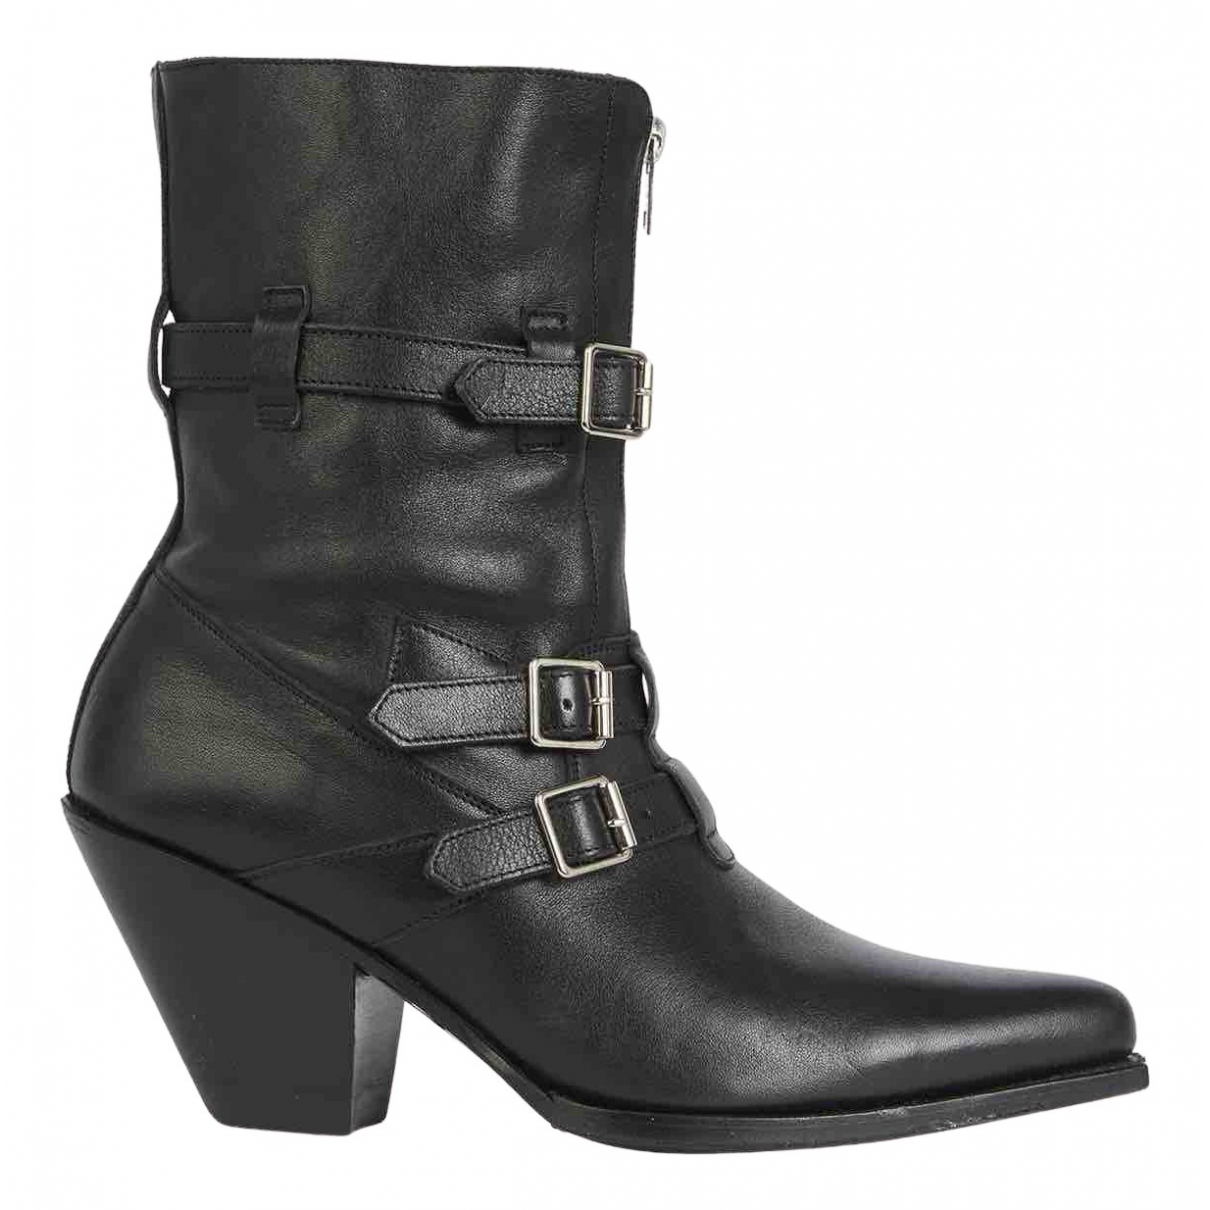 Celine Berlin Black Leather Ankle boots for Women 37 EU